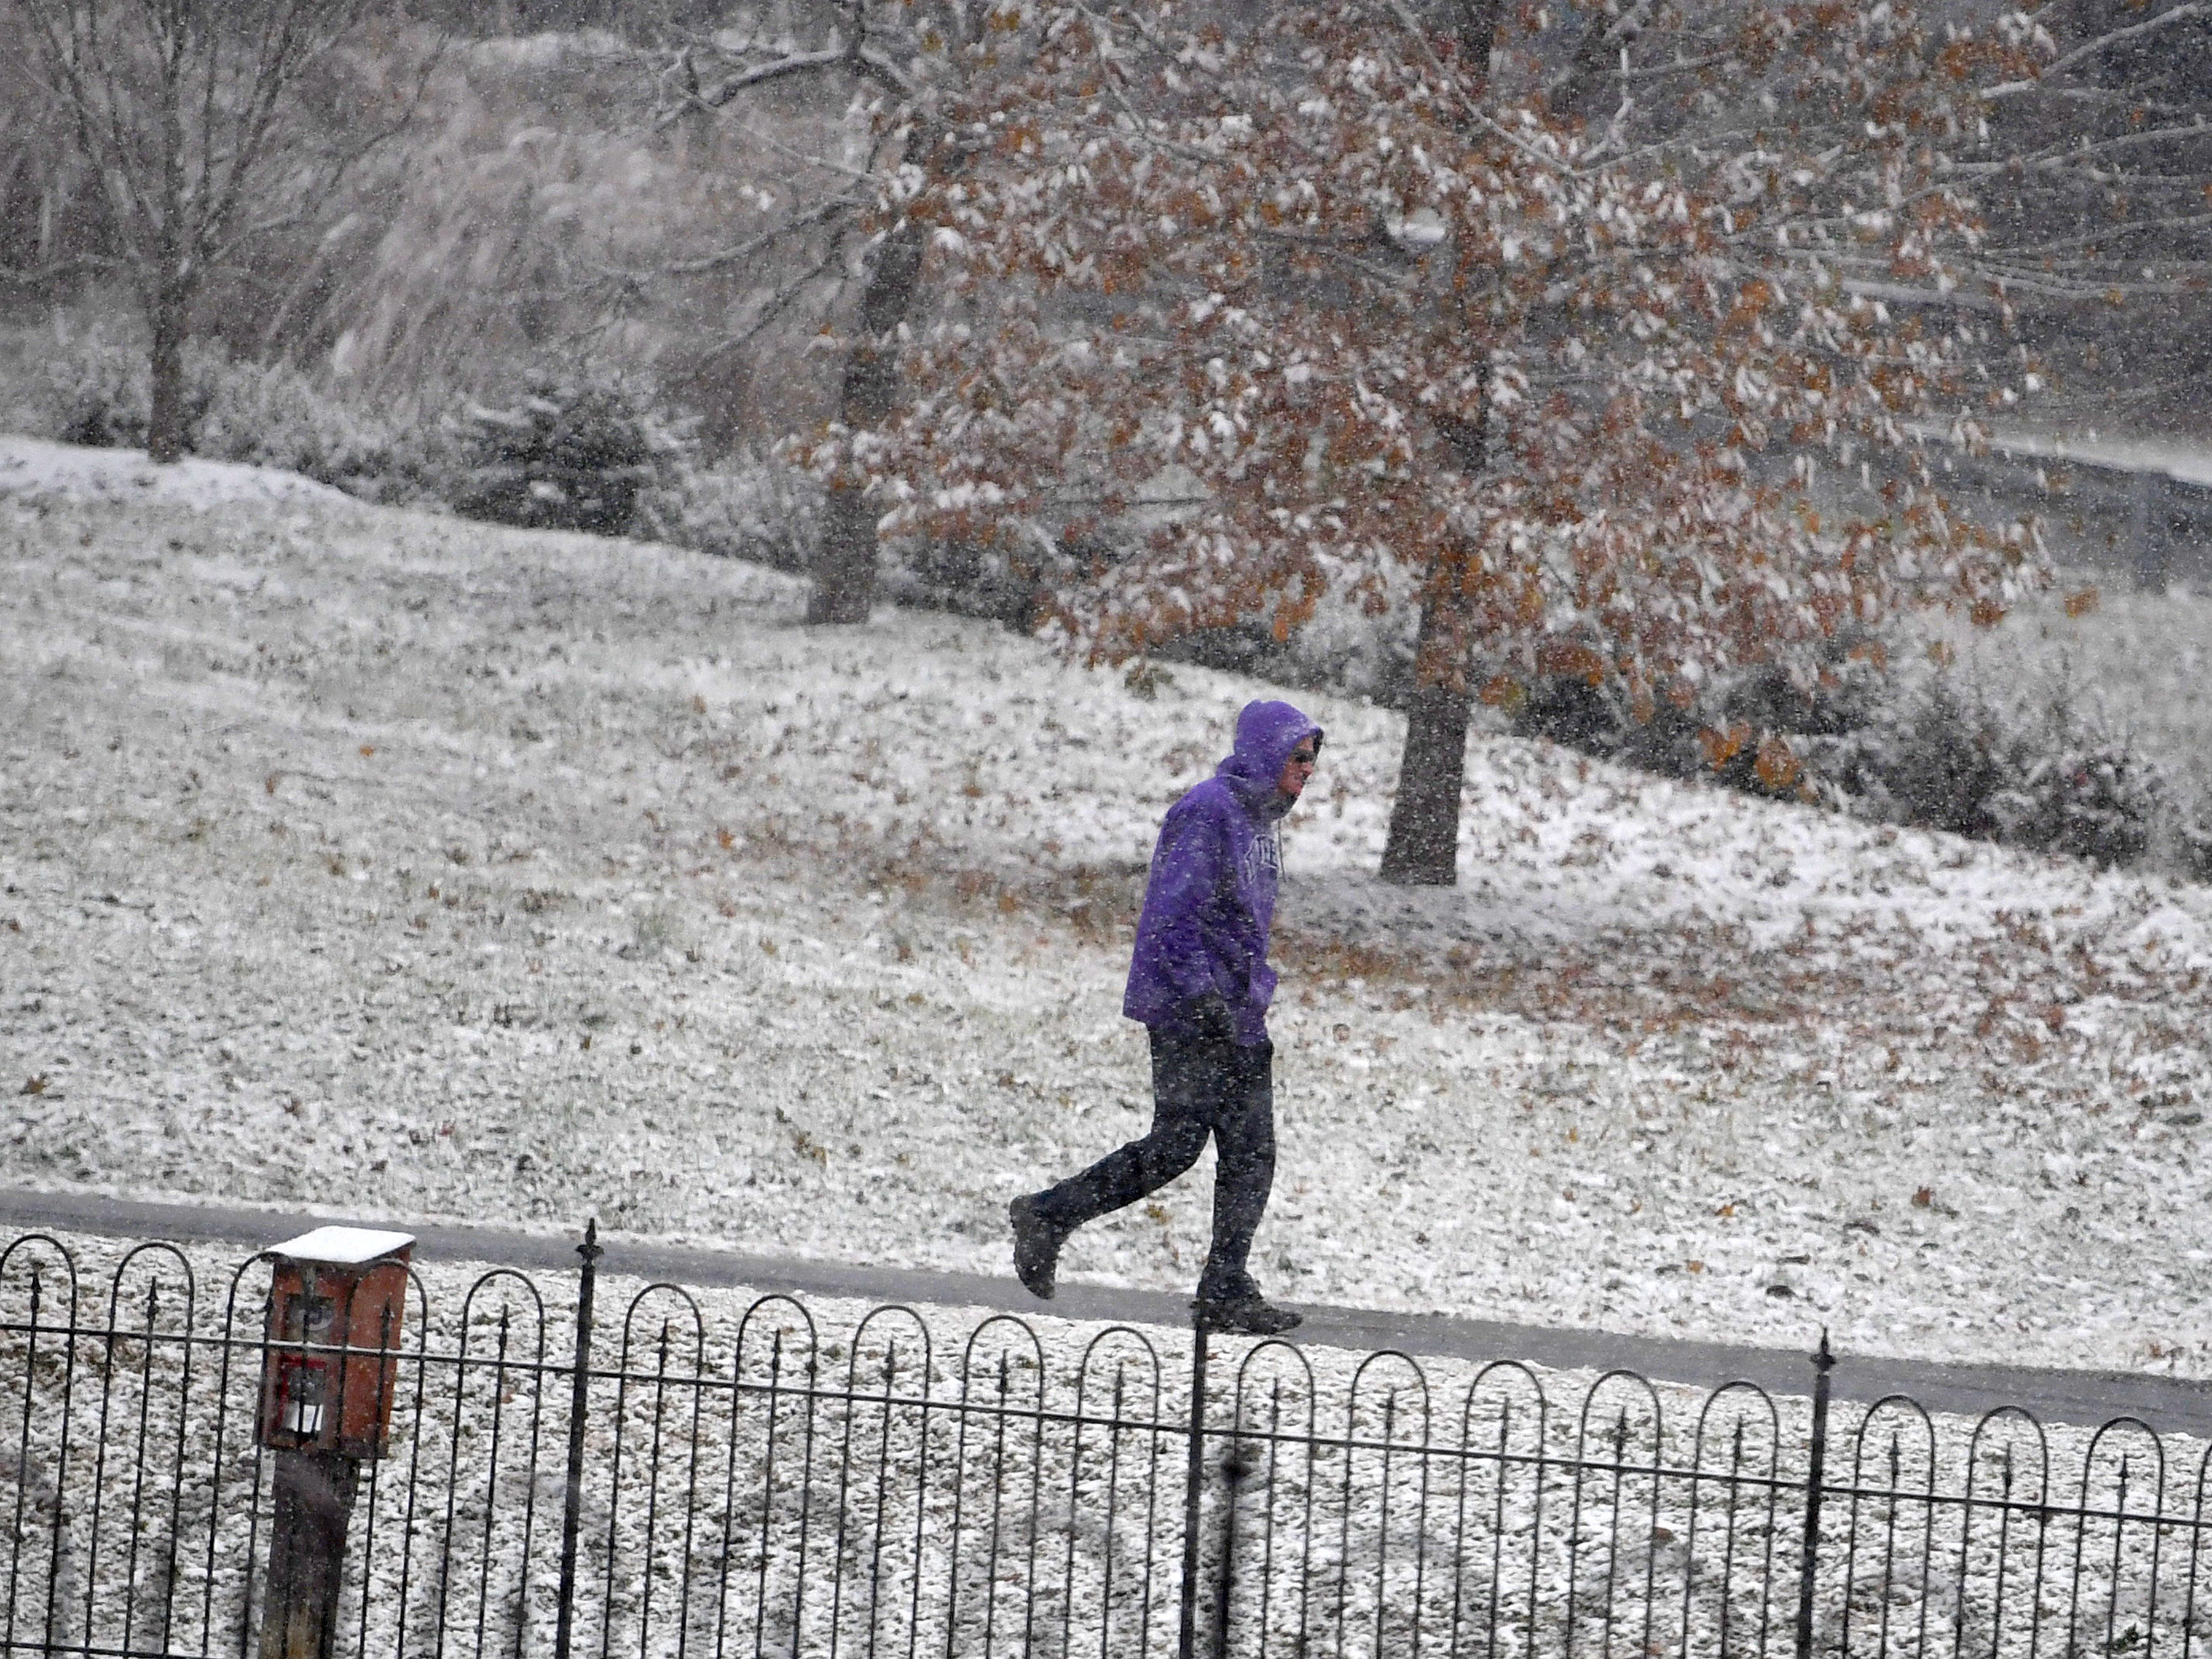 A pedestrian walks around Gypsy Hill Park in the falling snow in Staunton on Wednesday, Dec. 5, 2018.